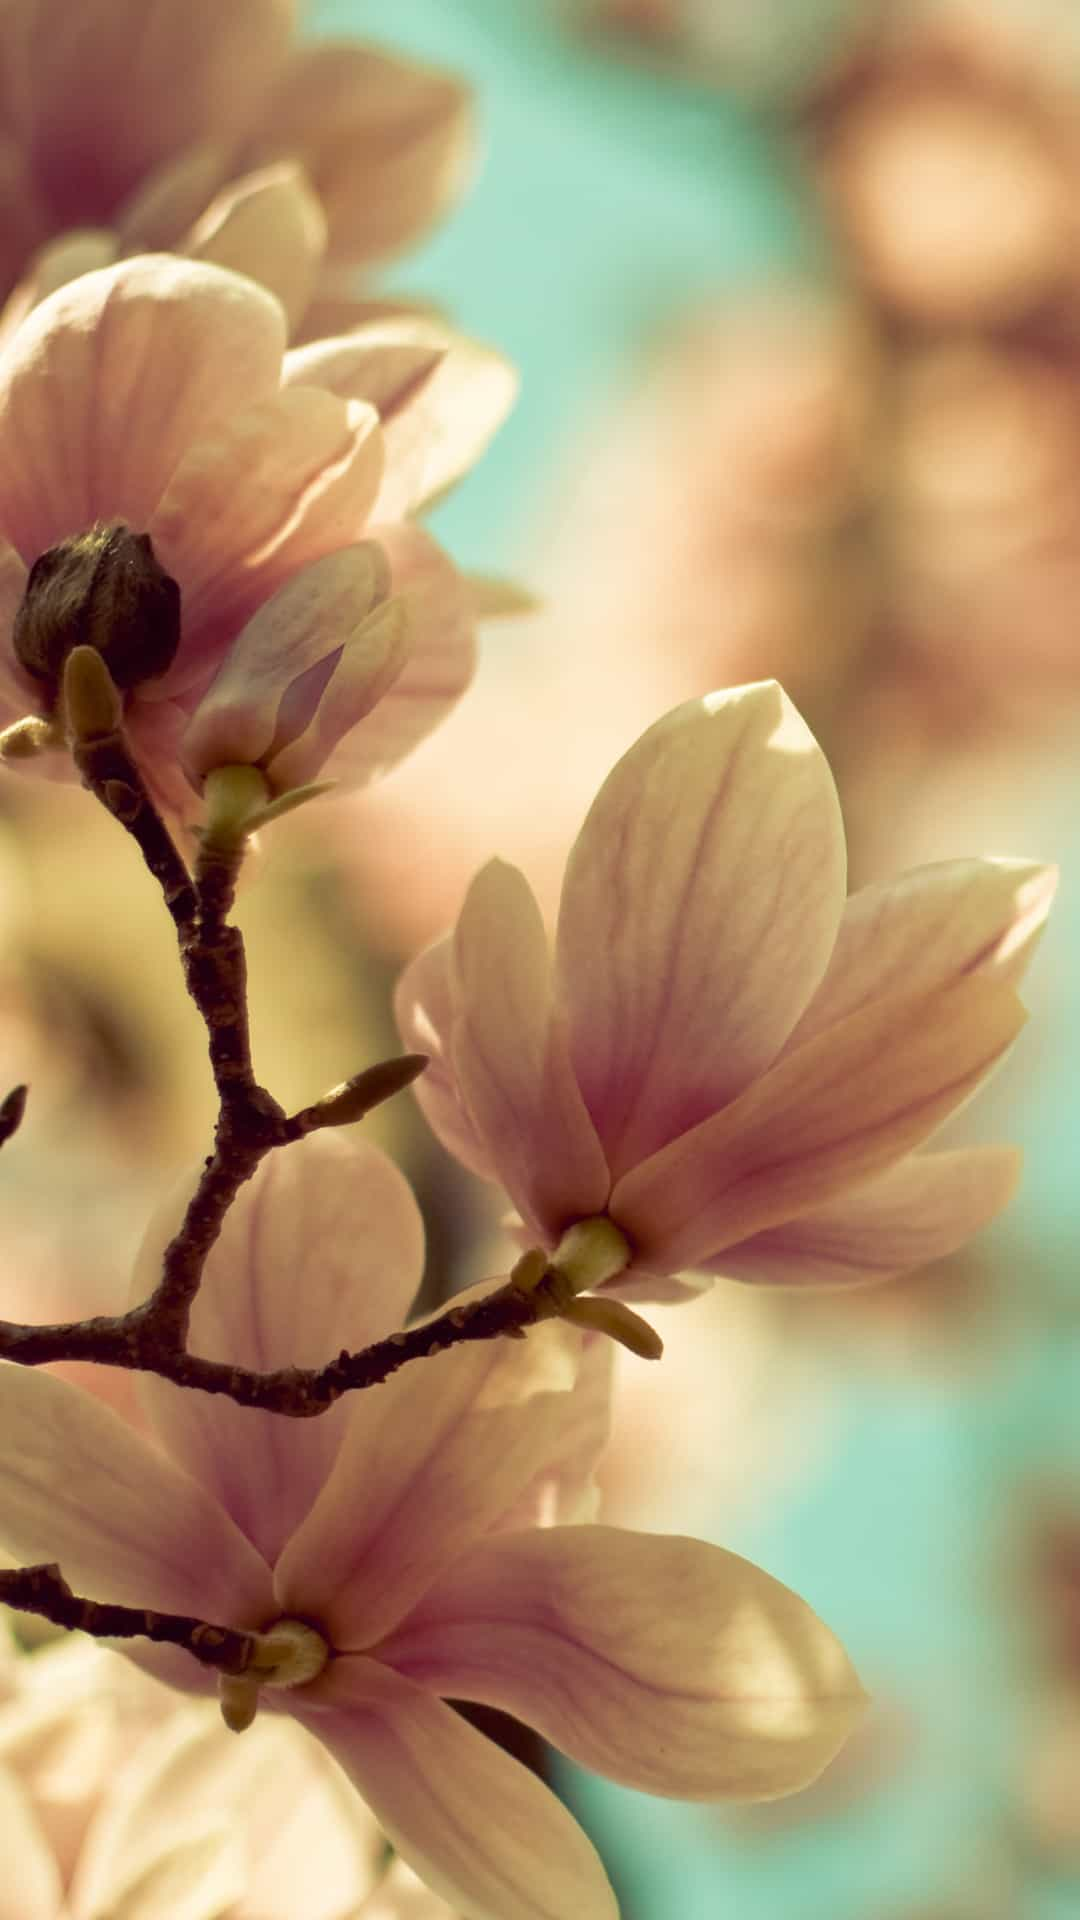 spring-flowers-blossom-samsung-android-wallpaper